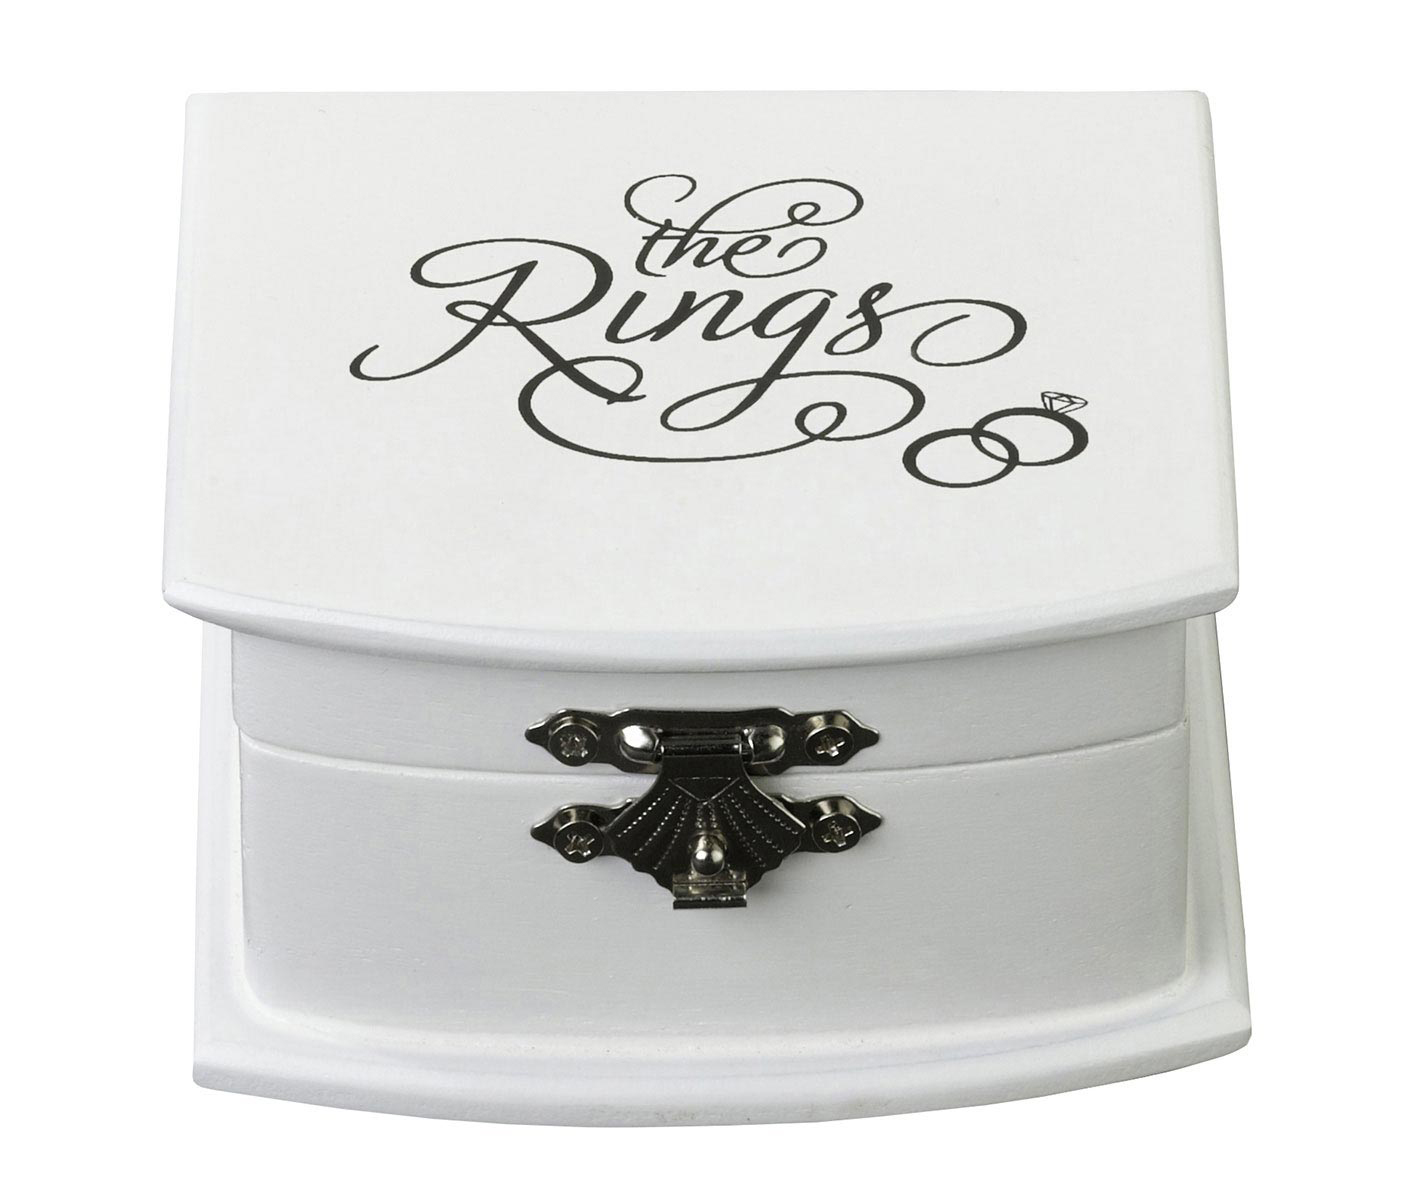 Beautiful White Metallic Hinge Wedding Ring Box